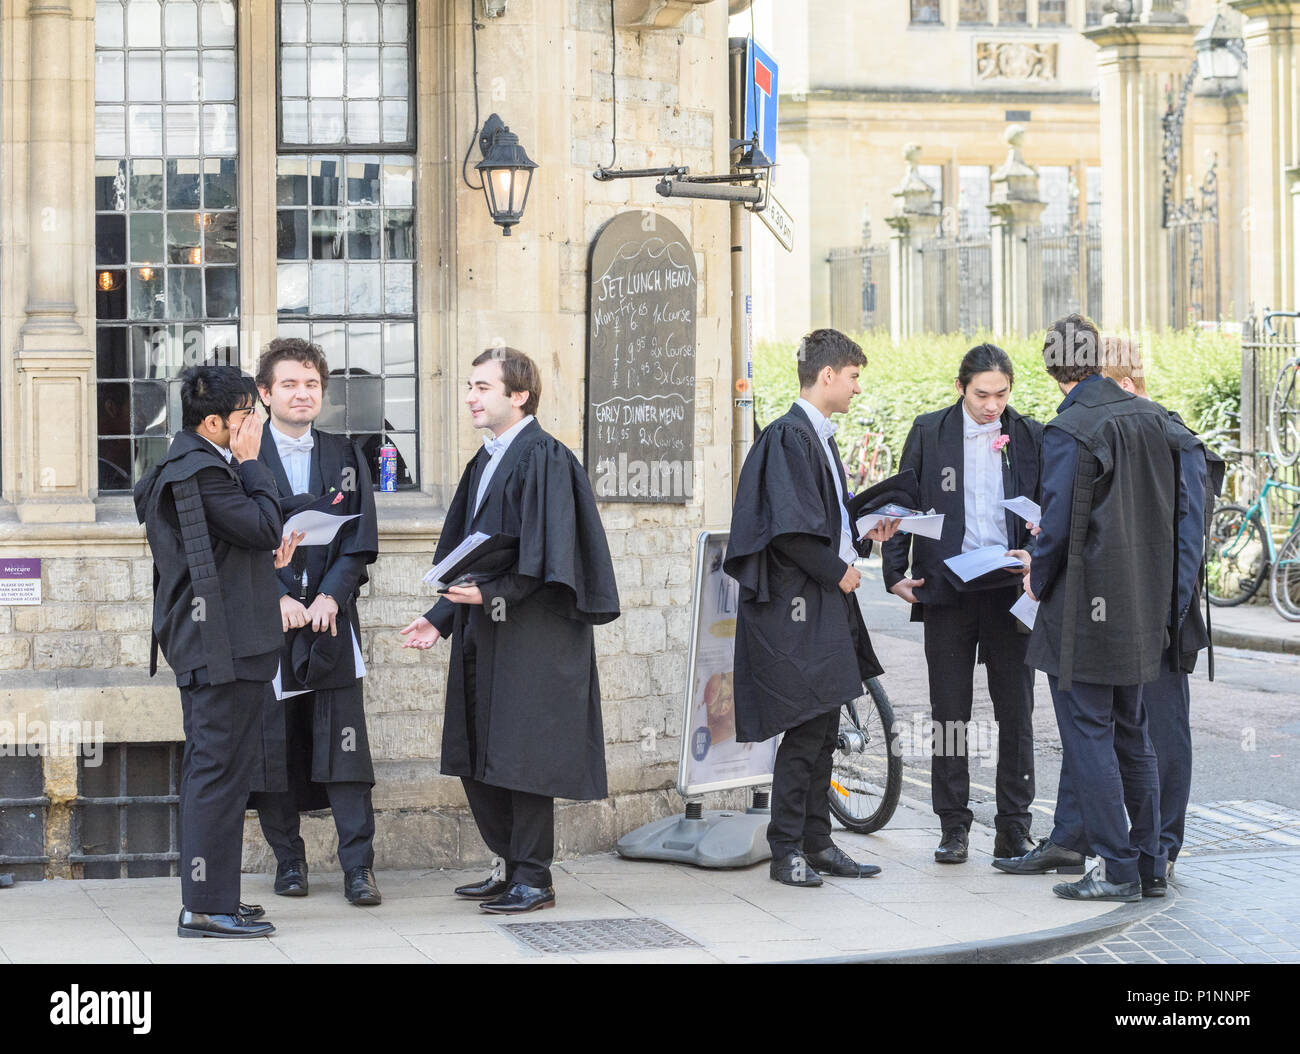 Students (with pink carnations) in deep discussion outside a pub at the corner of High Street and Merton Lane after an exam at university of Oxford. - Stock Image